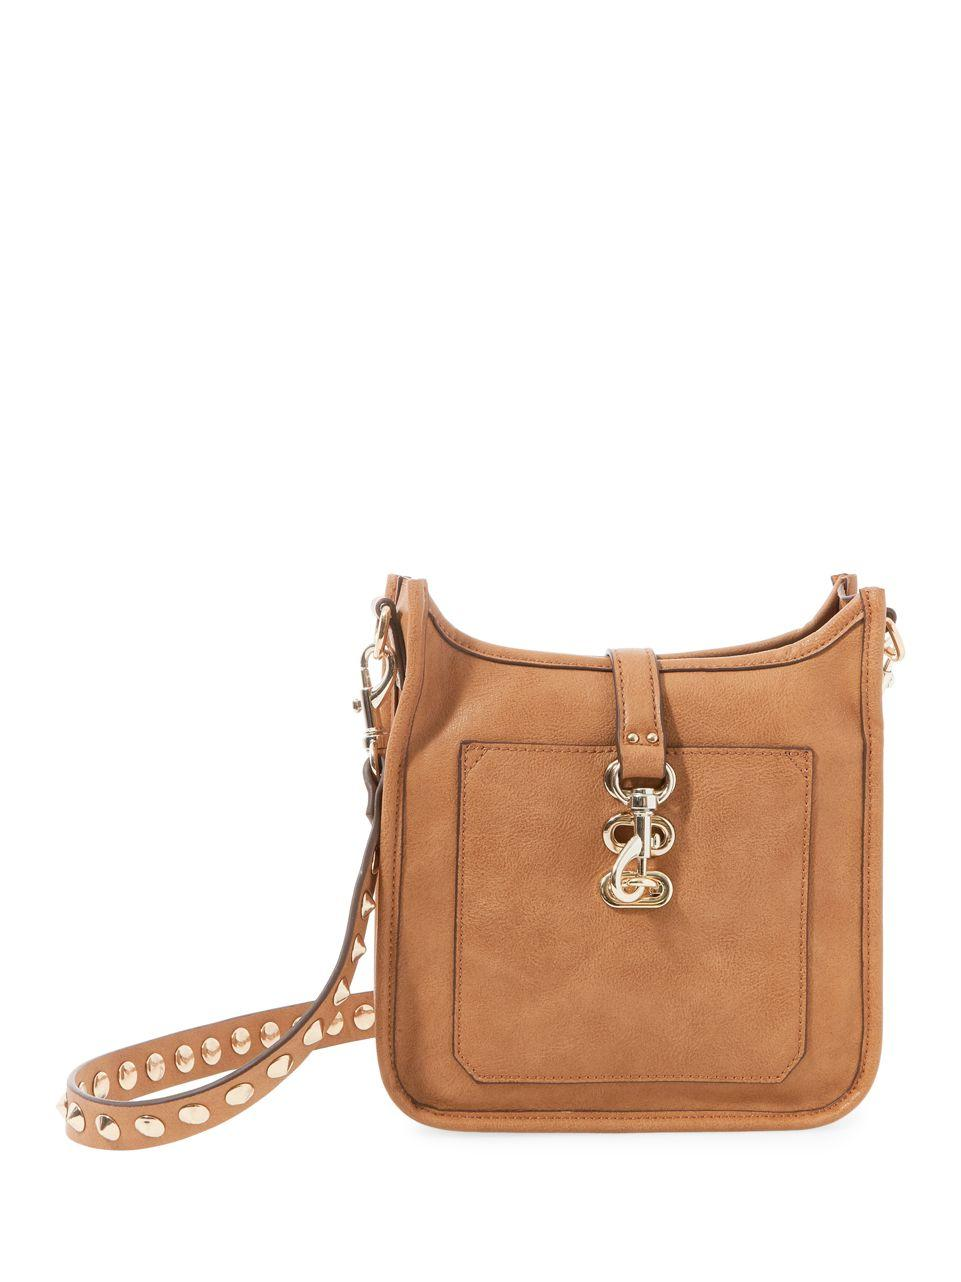 fafba600761d Lyst - Steve Madden Bwylie North South Crossbody Bag in Brown